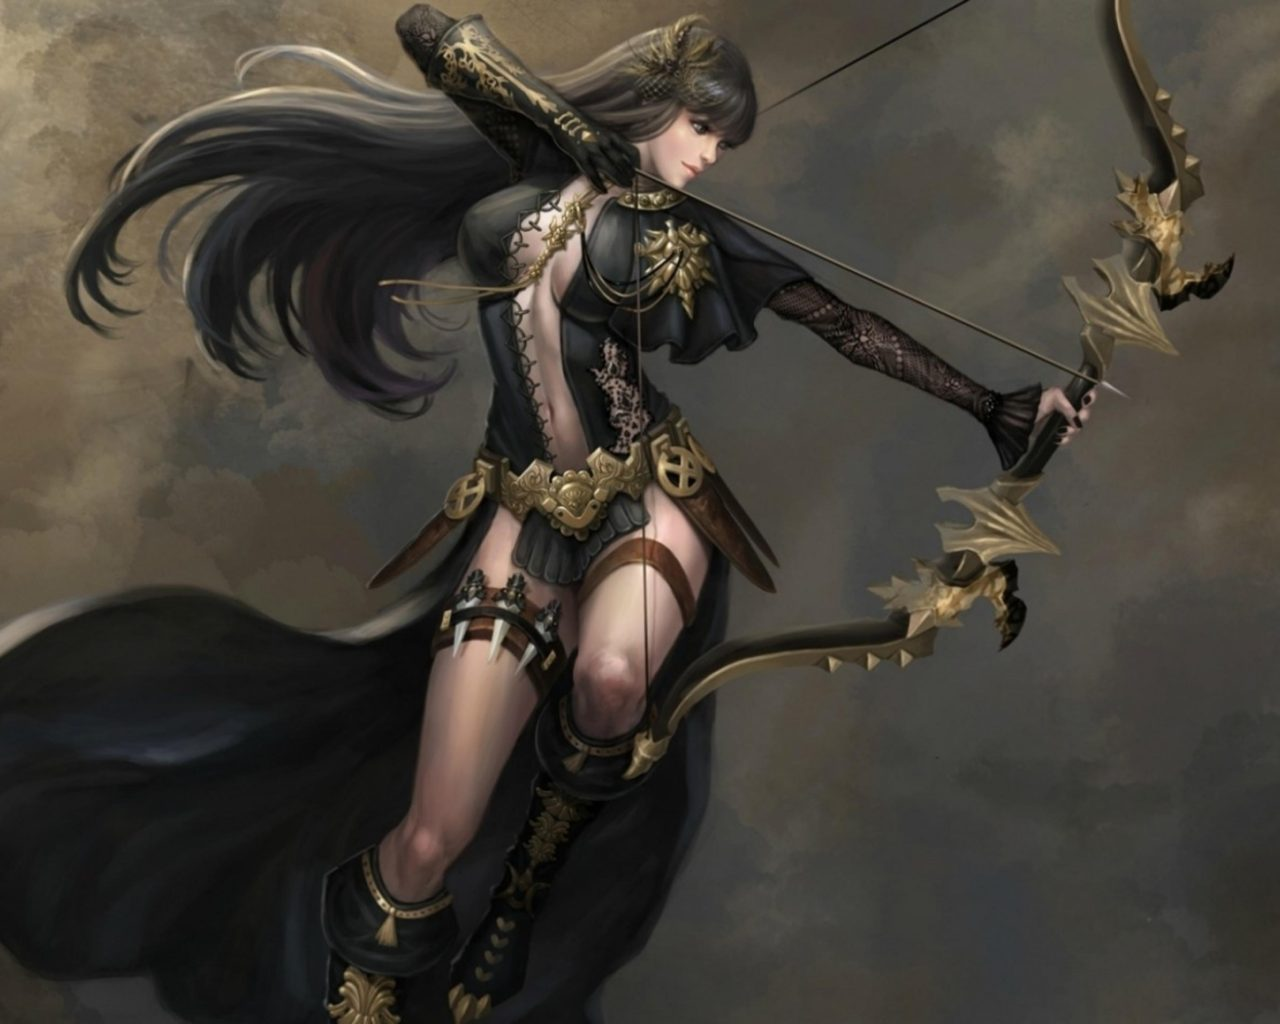 Asian Girl Hd Wallpaper 1920x1200 Archer Arrow Black Fighter Woman Girl Game Ultra Bow And